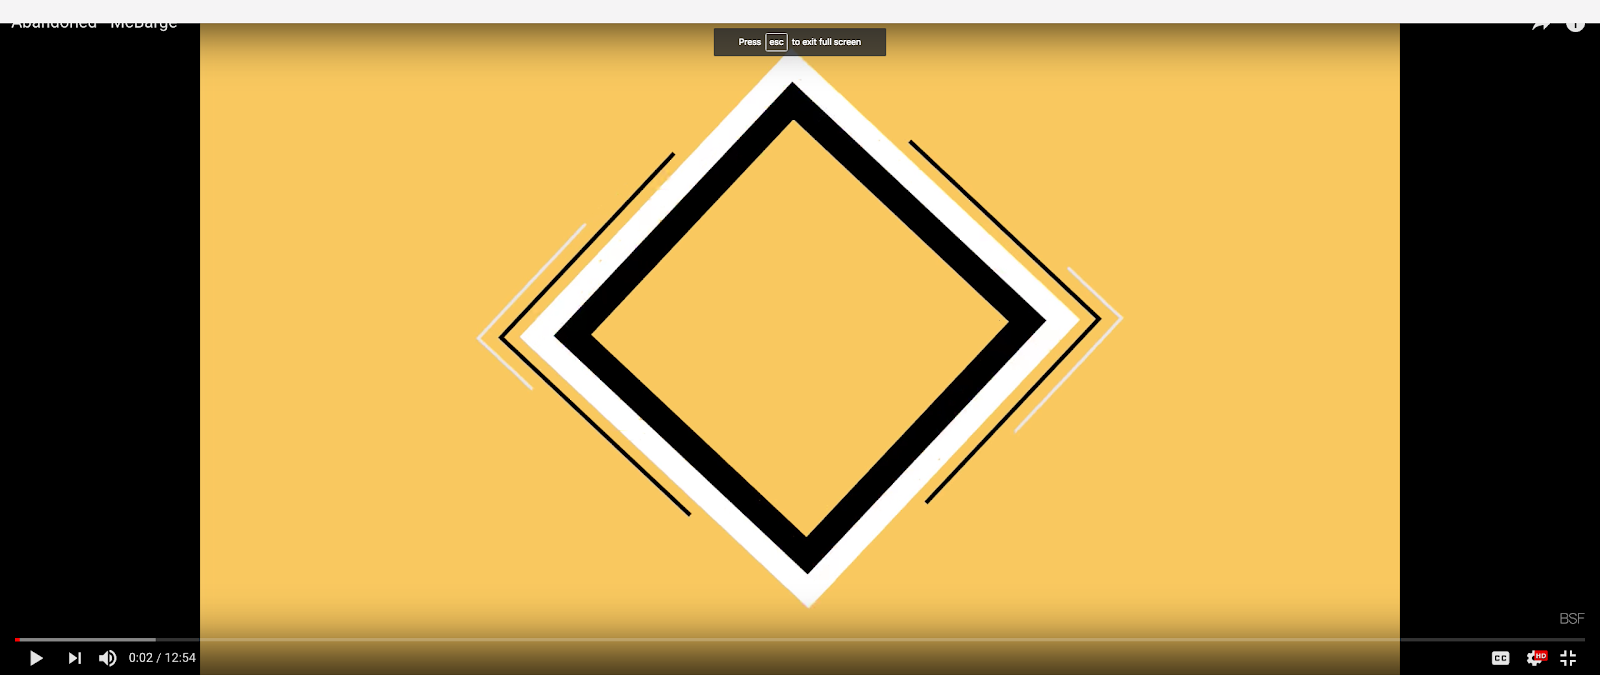 How do I get rid of this white bar on the top of YouTube